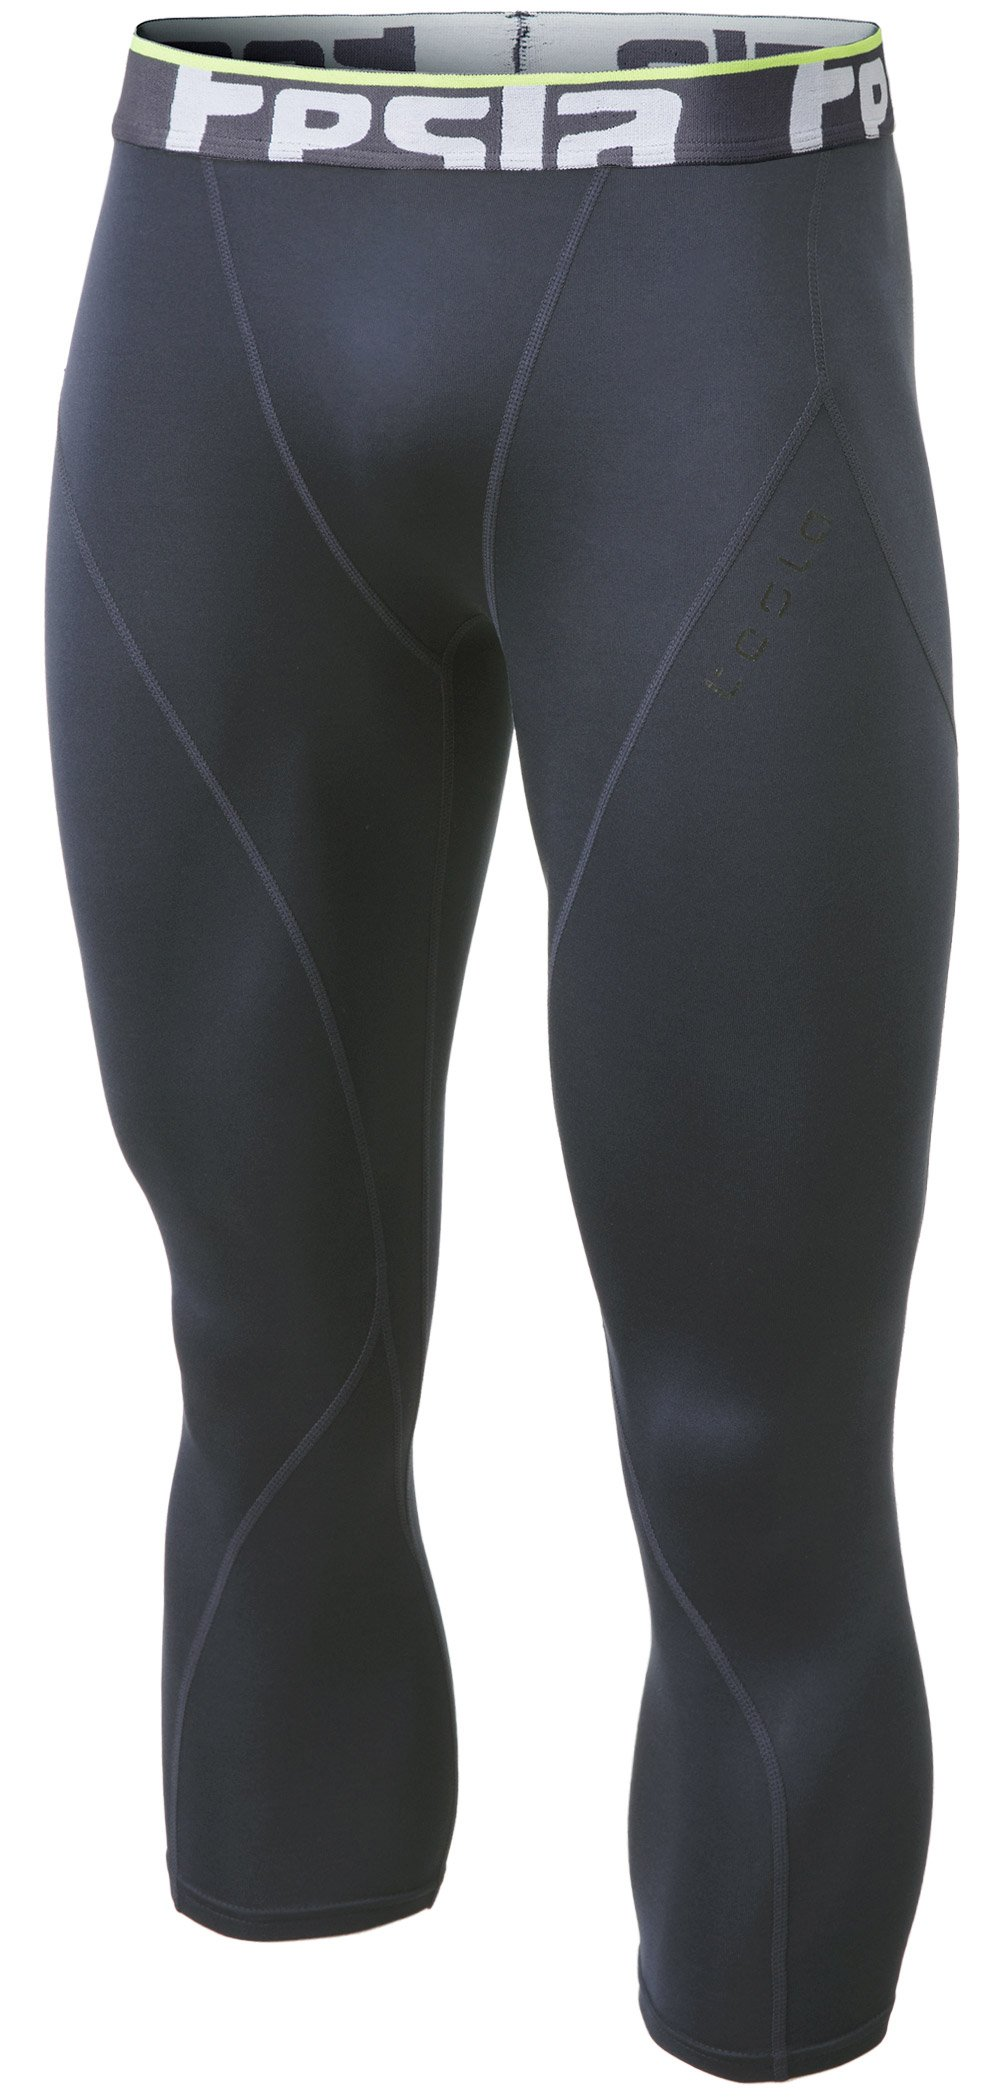 Tesla TM-YUC32-DGY_Large Men's Thermal Wintergear 3/4 Capri Shorts Compression Baselayer Tights YUC32